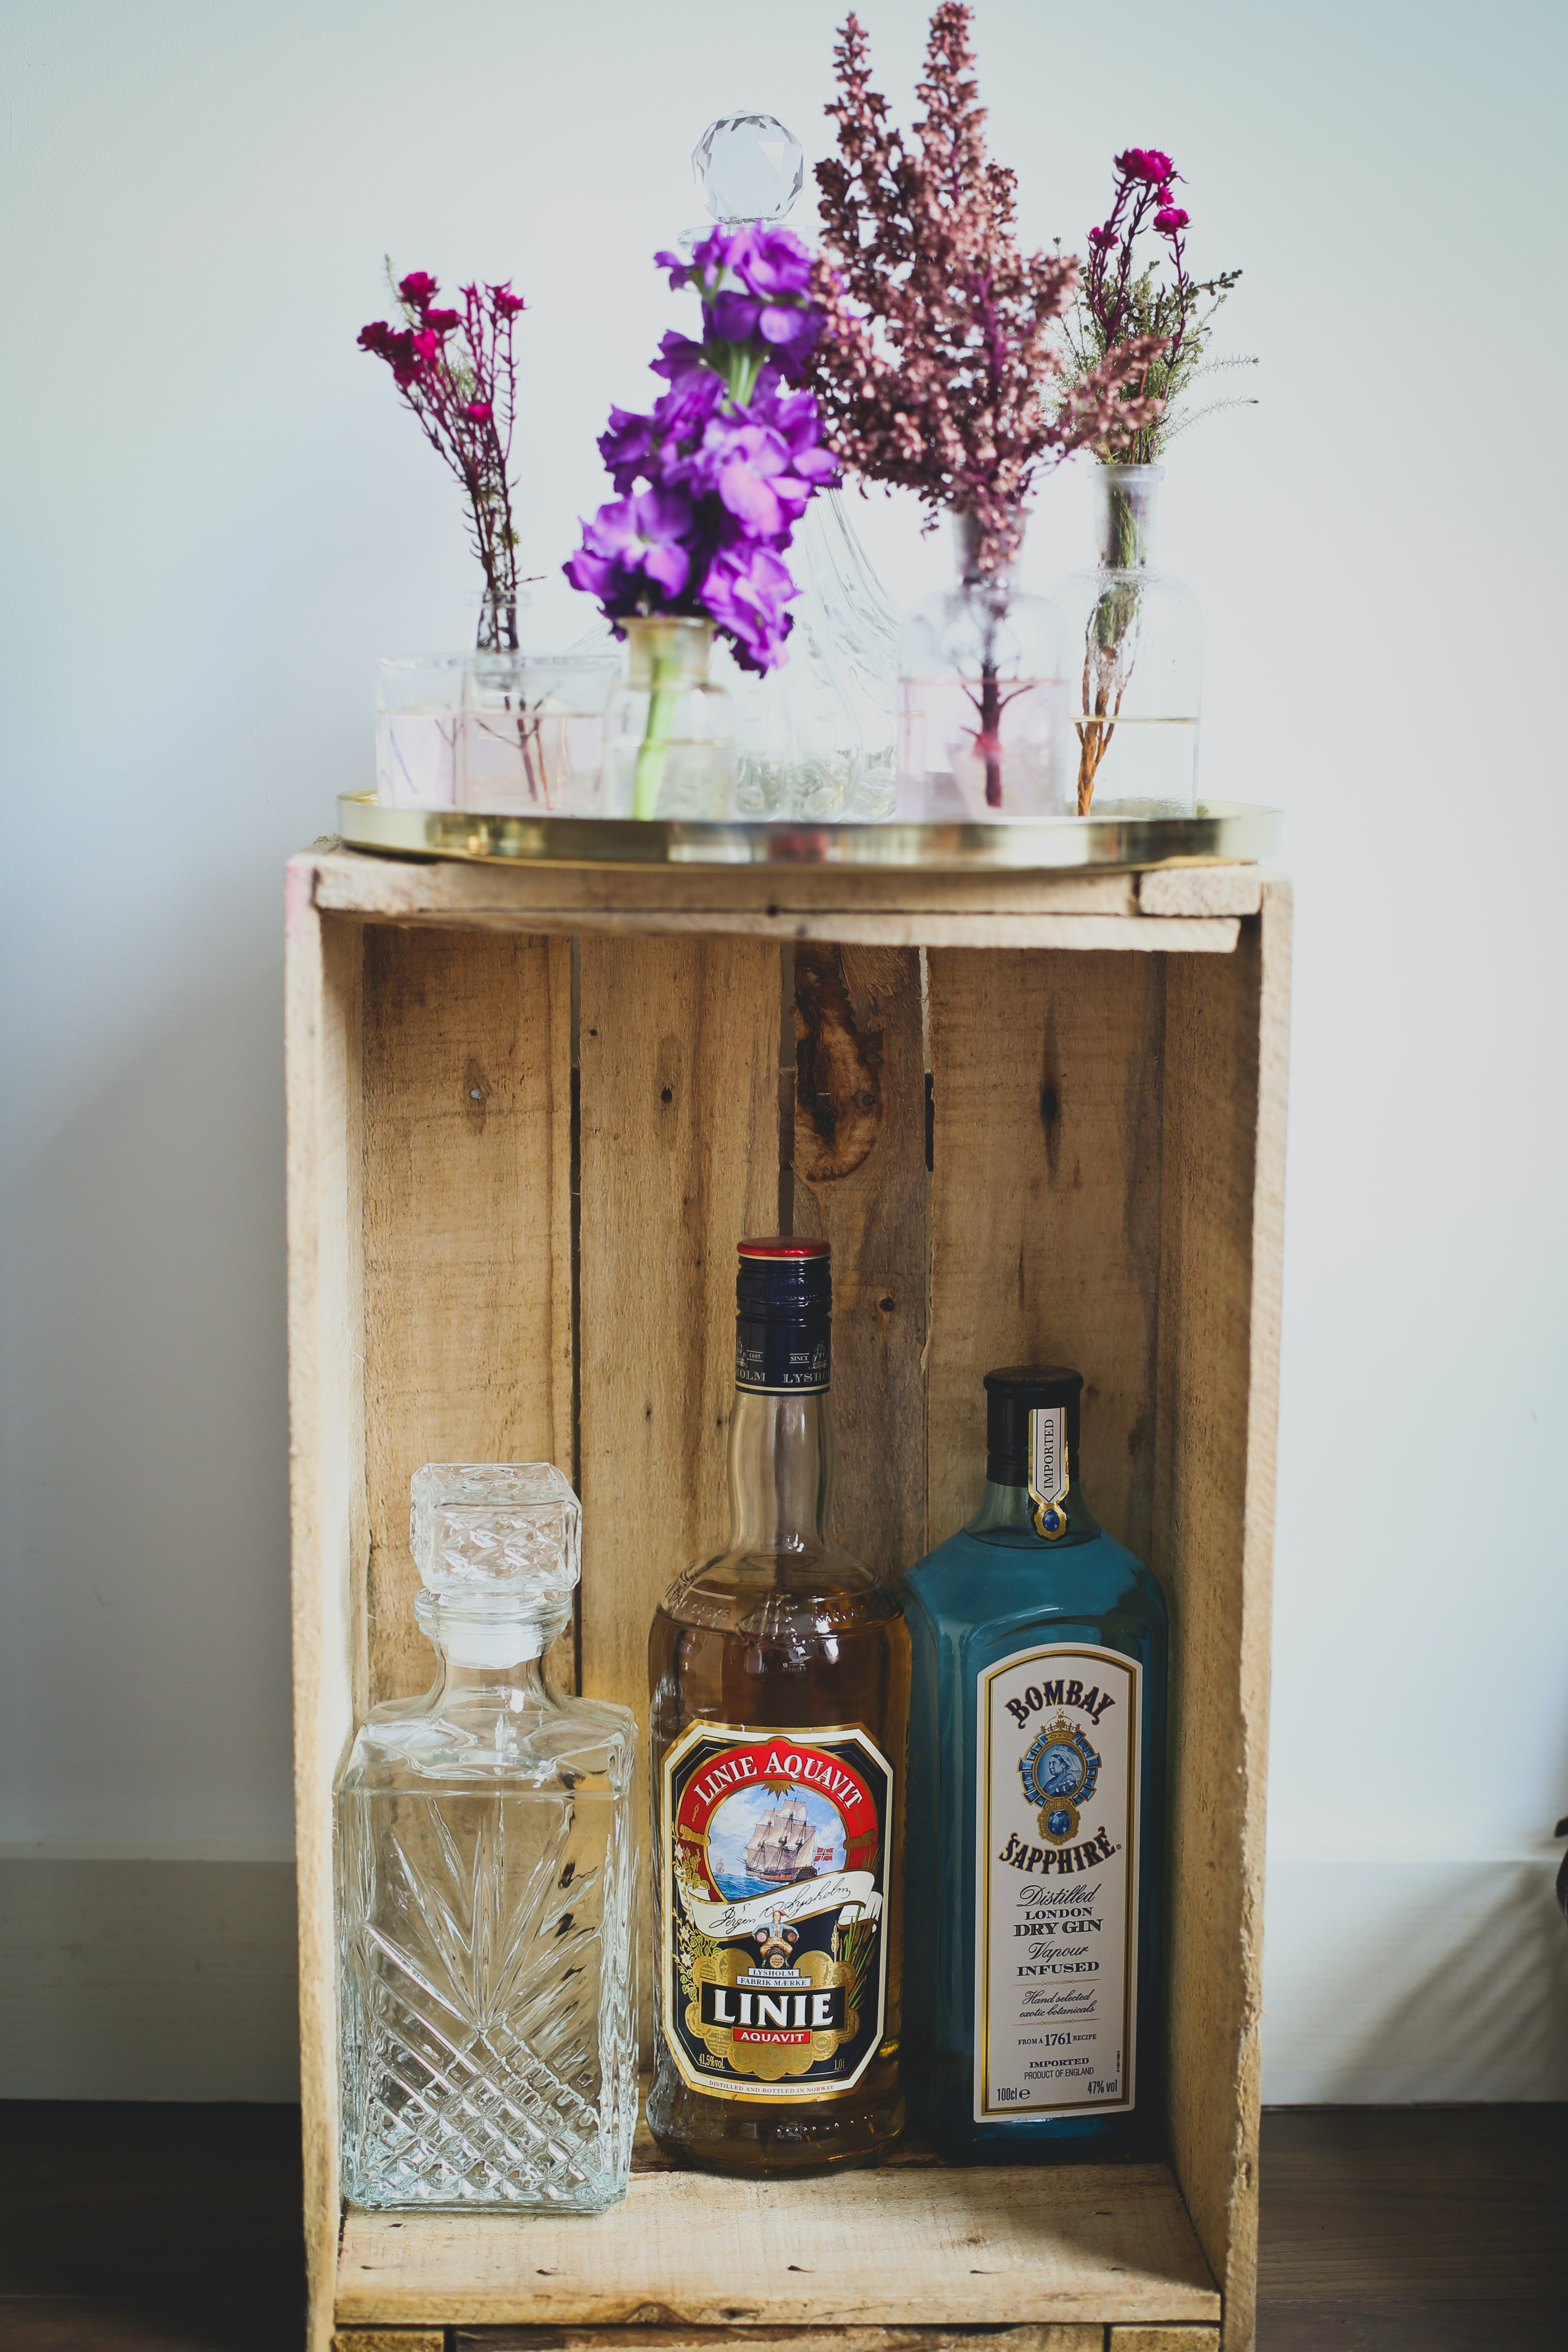 clear glass decanter on wooden rack